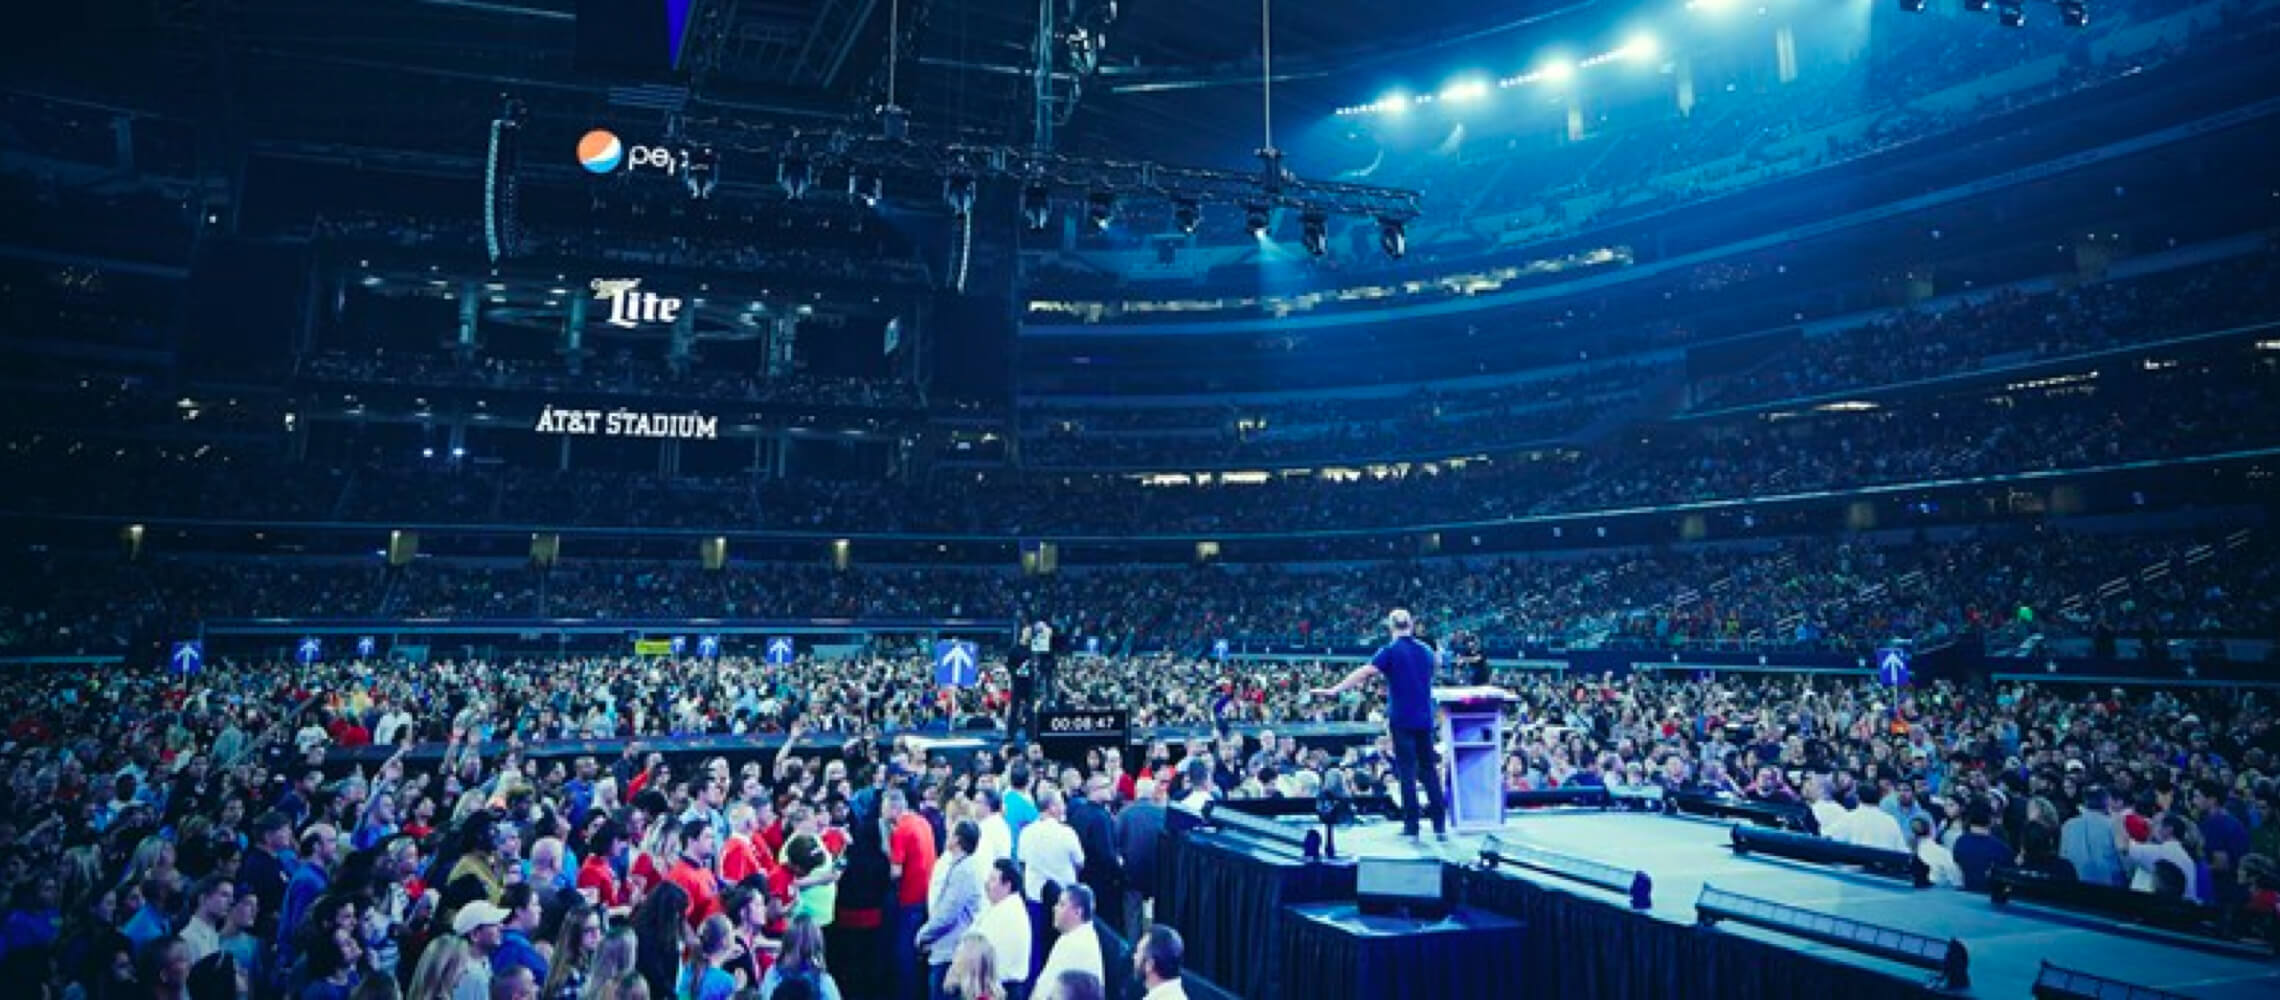 Greg Laurie preaching at Harvest America